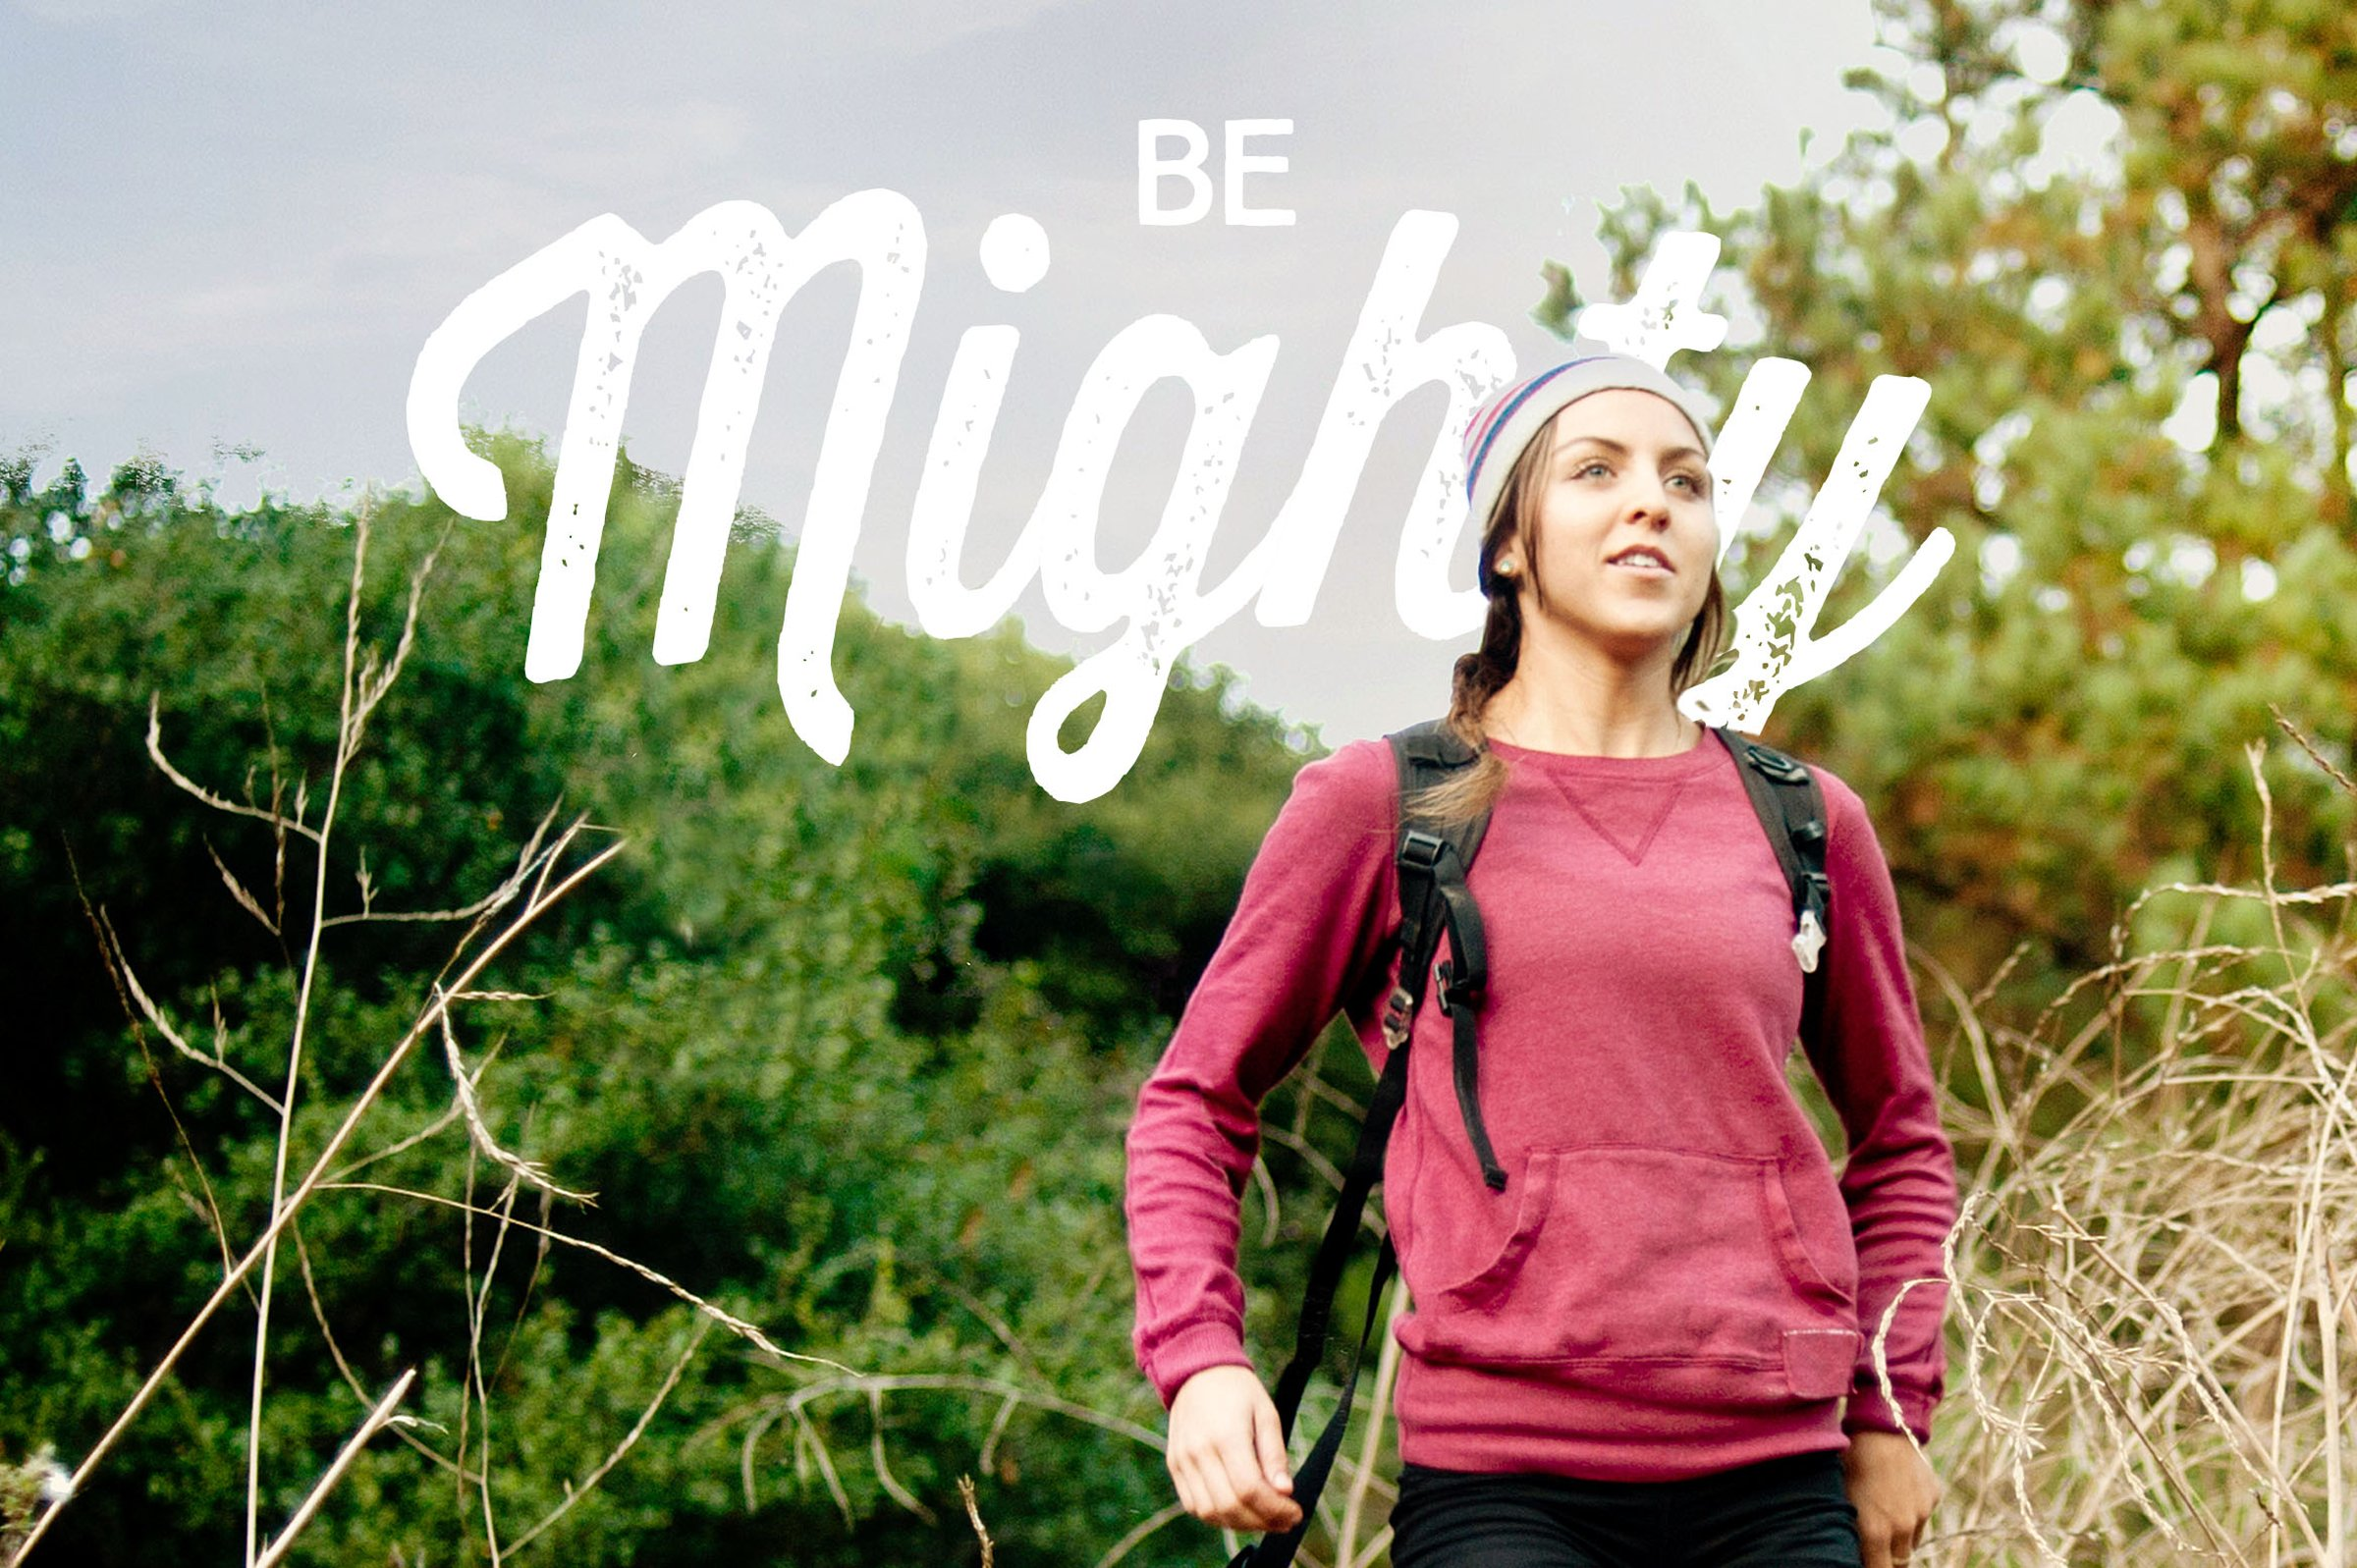 woman hiking with 'be mighty' text in corner of image